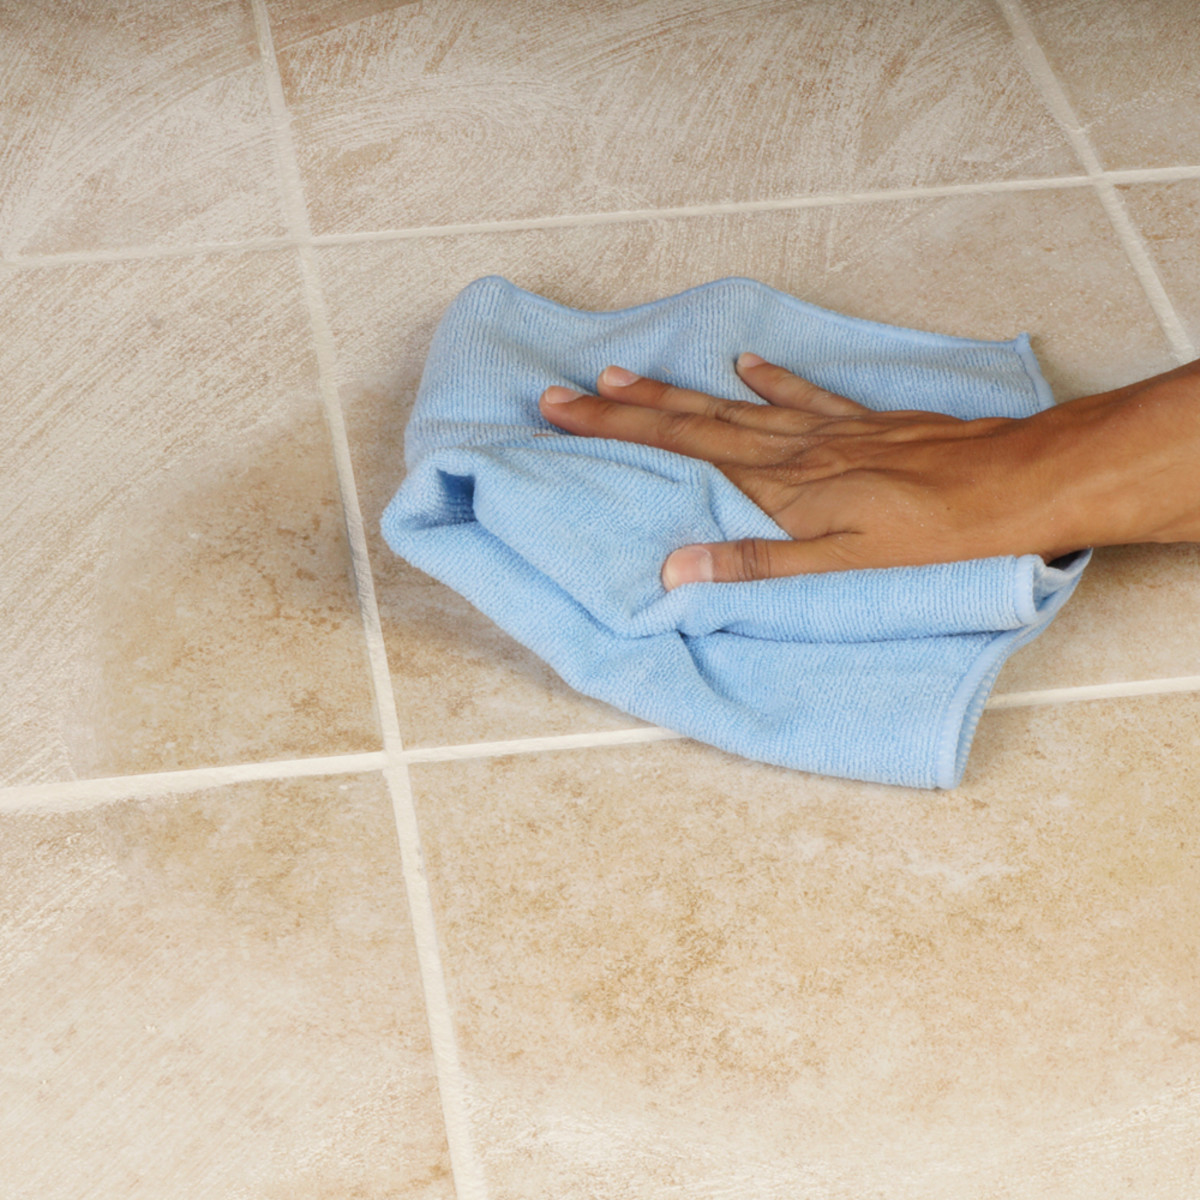 Quickly wipe up the tiles to prevent calcium water spotting.